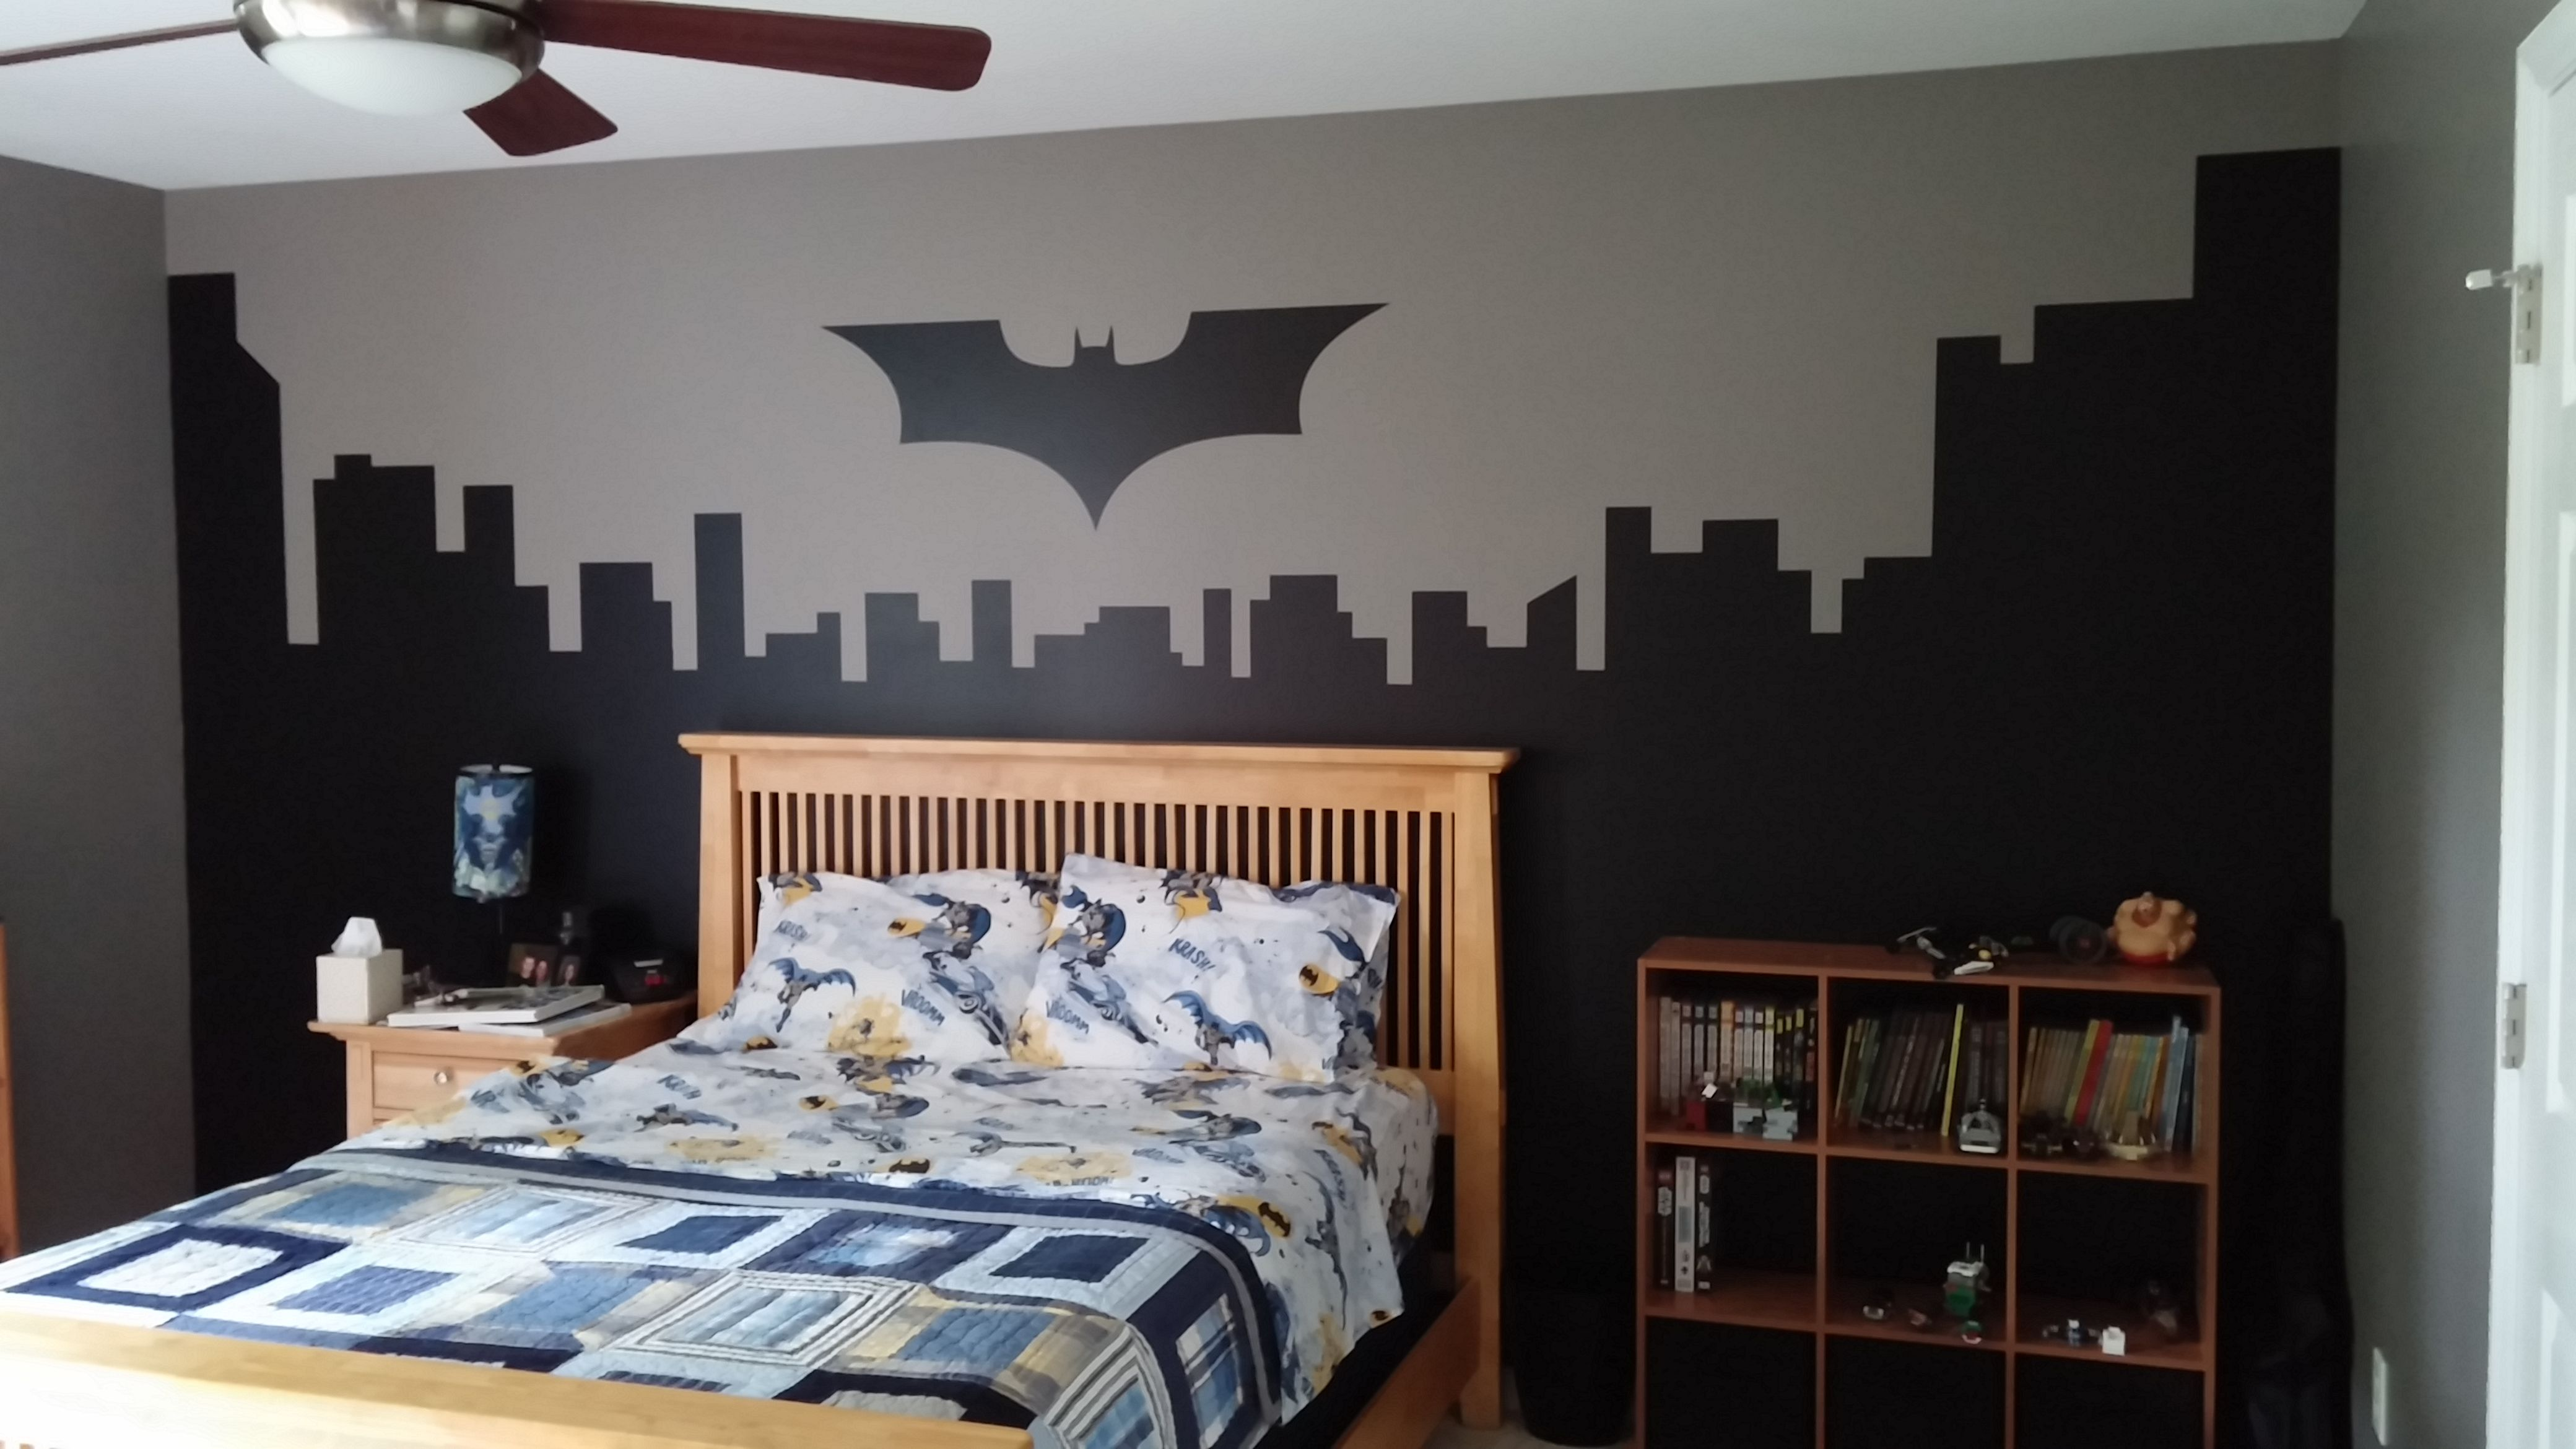 Finished batman logo and gotham city accent wall nicks finished batman logo and gotham city accent wall amipublicfo Gallery